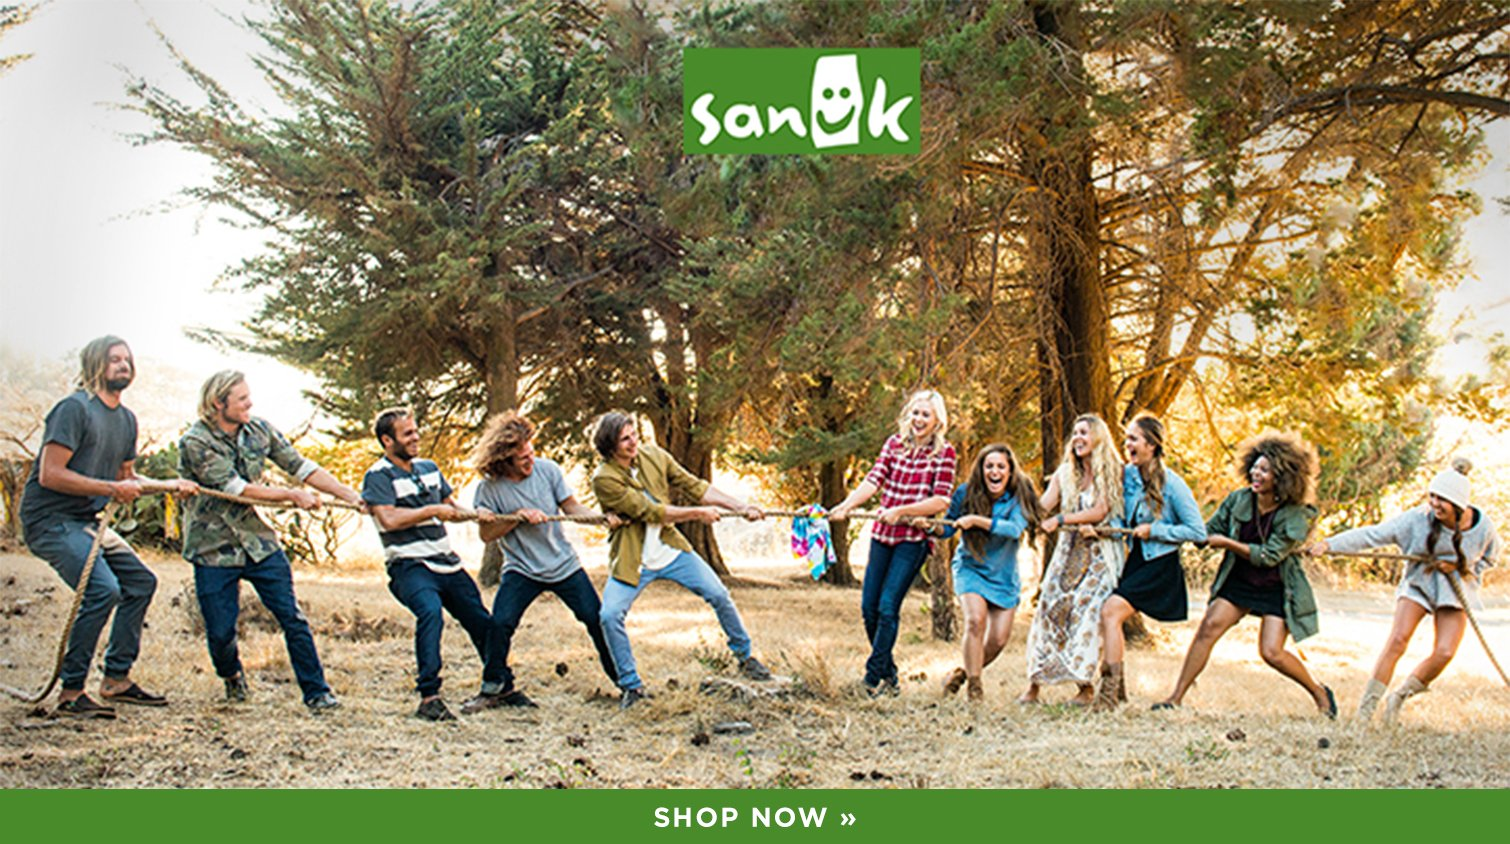 Hero-1-sanuk-2016-10-3. The latest styles from Sanuk. Shop now.